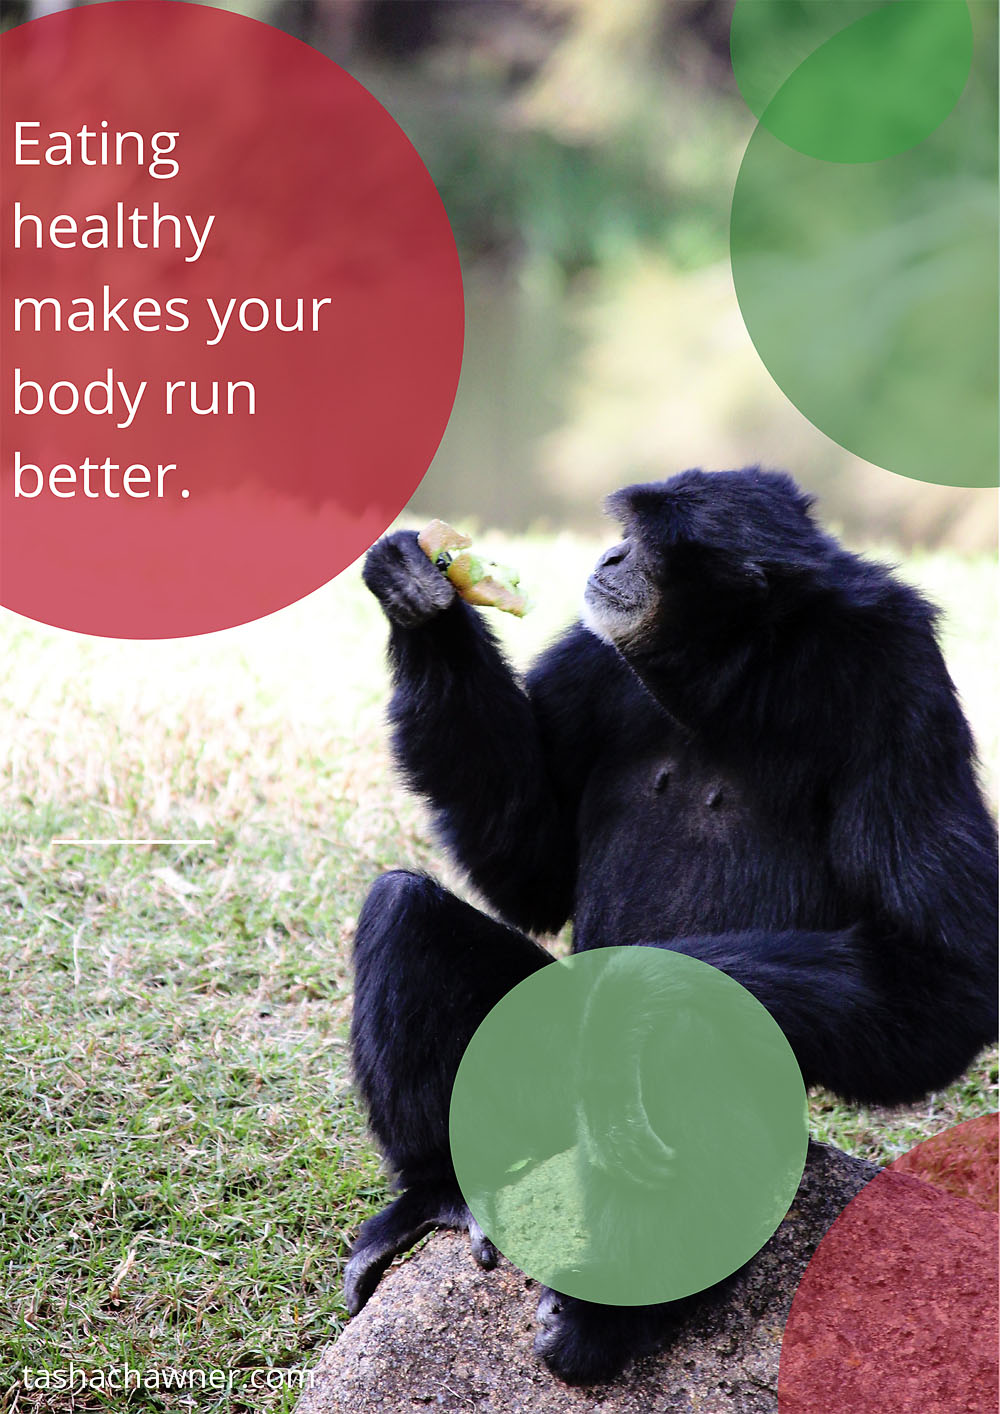 eat healthy poster